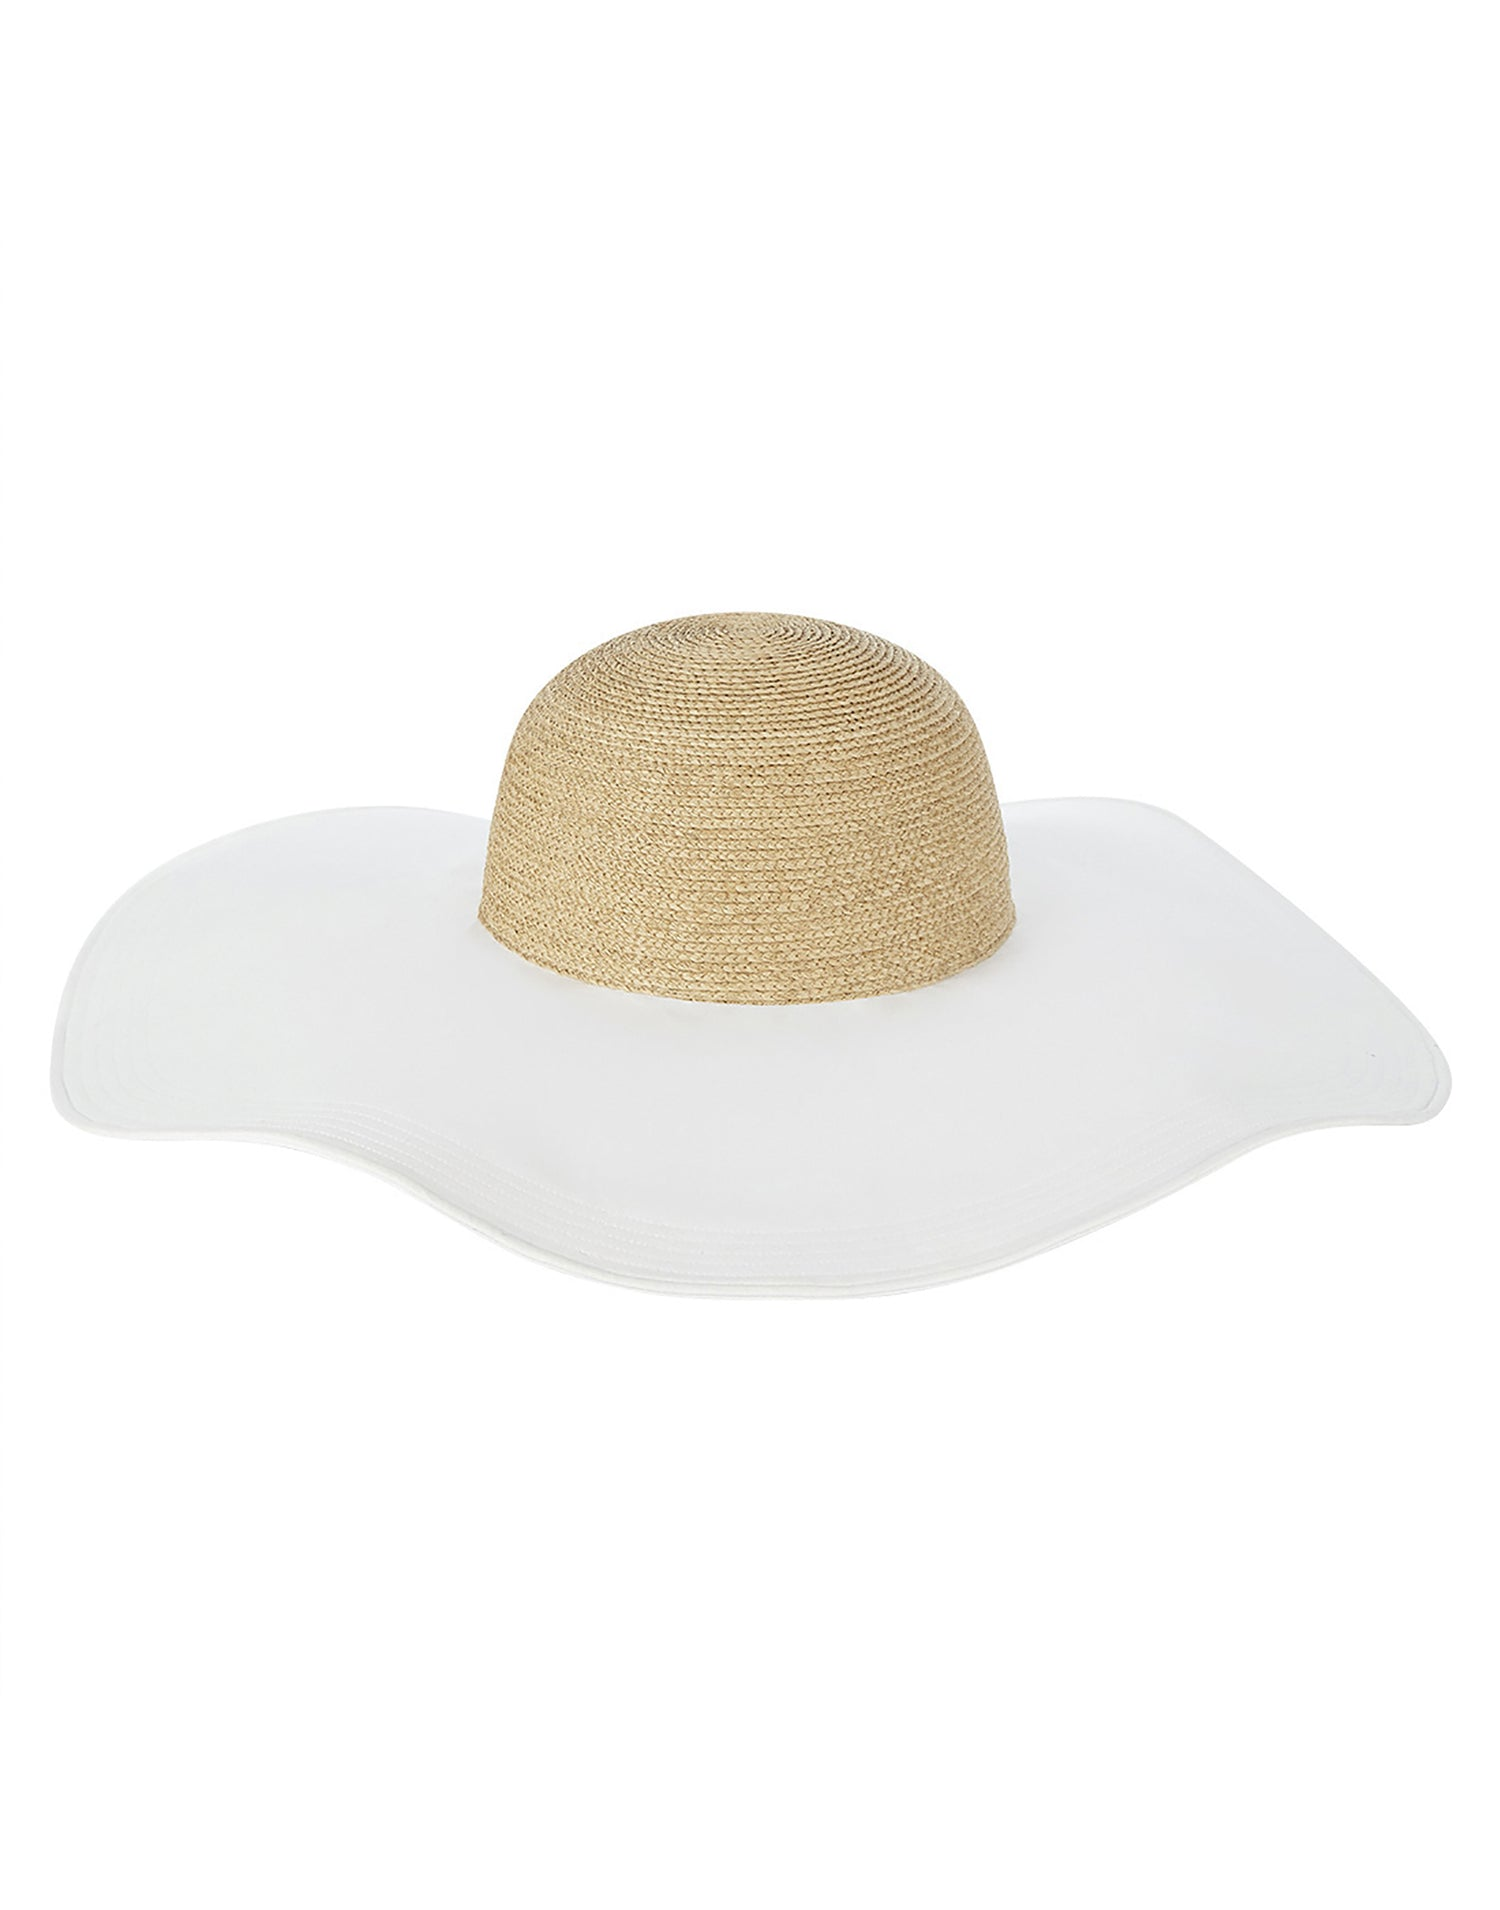 Florabella's Gretchen Sun Hat in Natural White - Product View